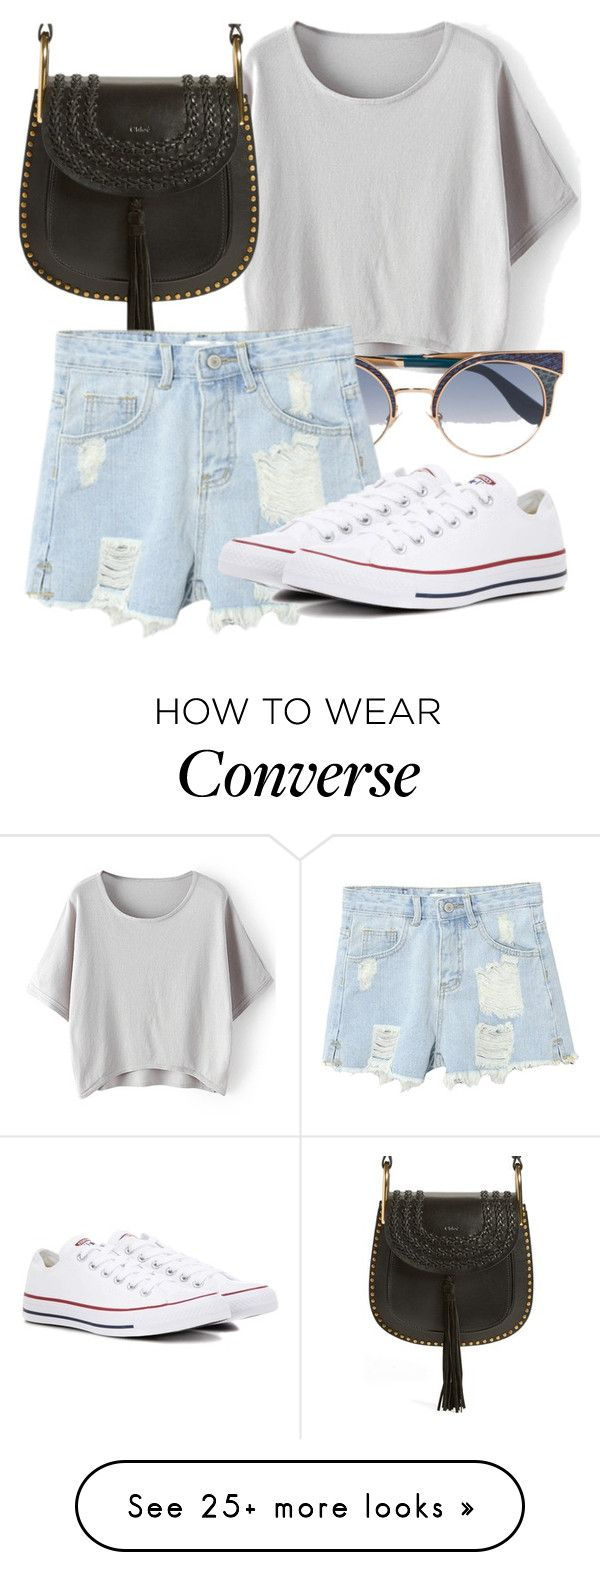 """Untitled #4023"" by beatrizvilar on Polyvore featuring Chloé, Jimmy Choo, WithChic and Converse"